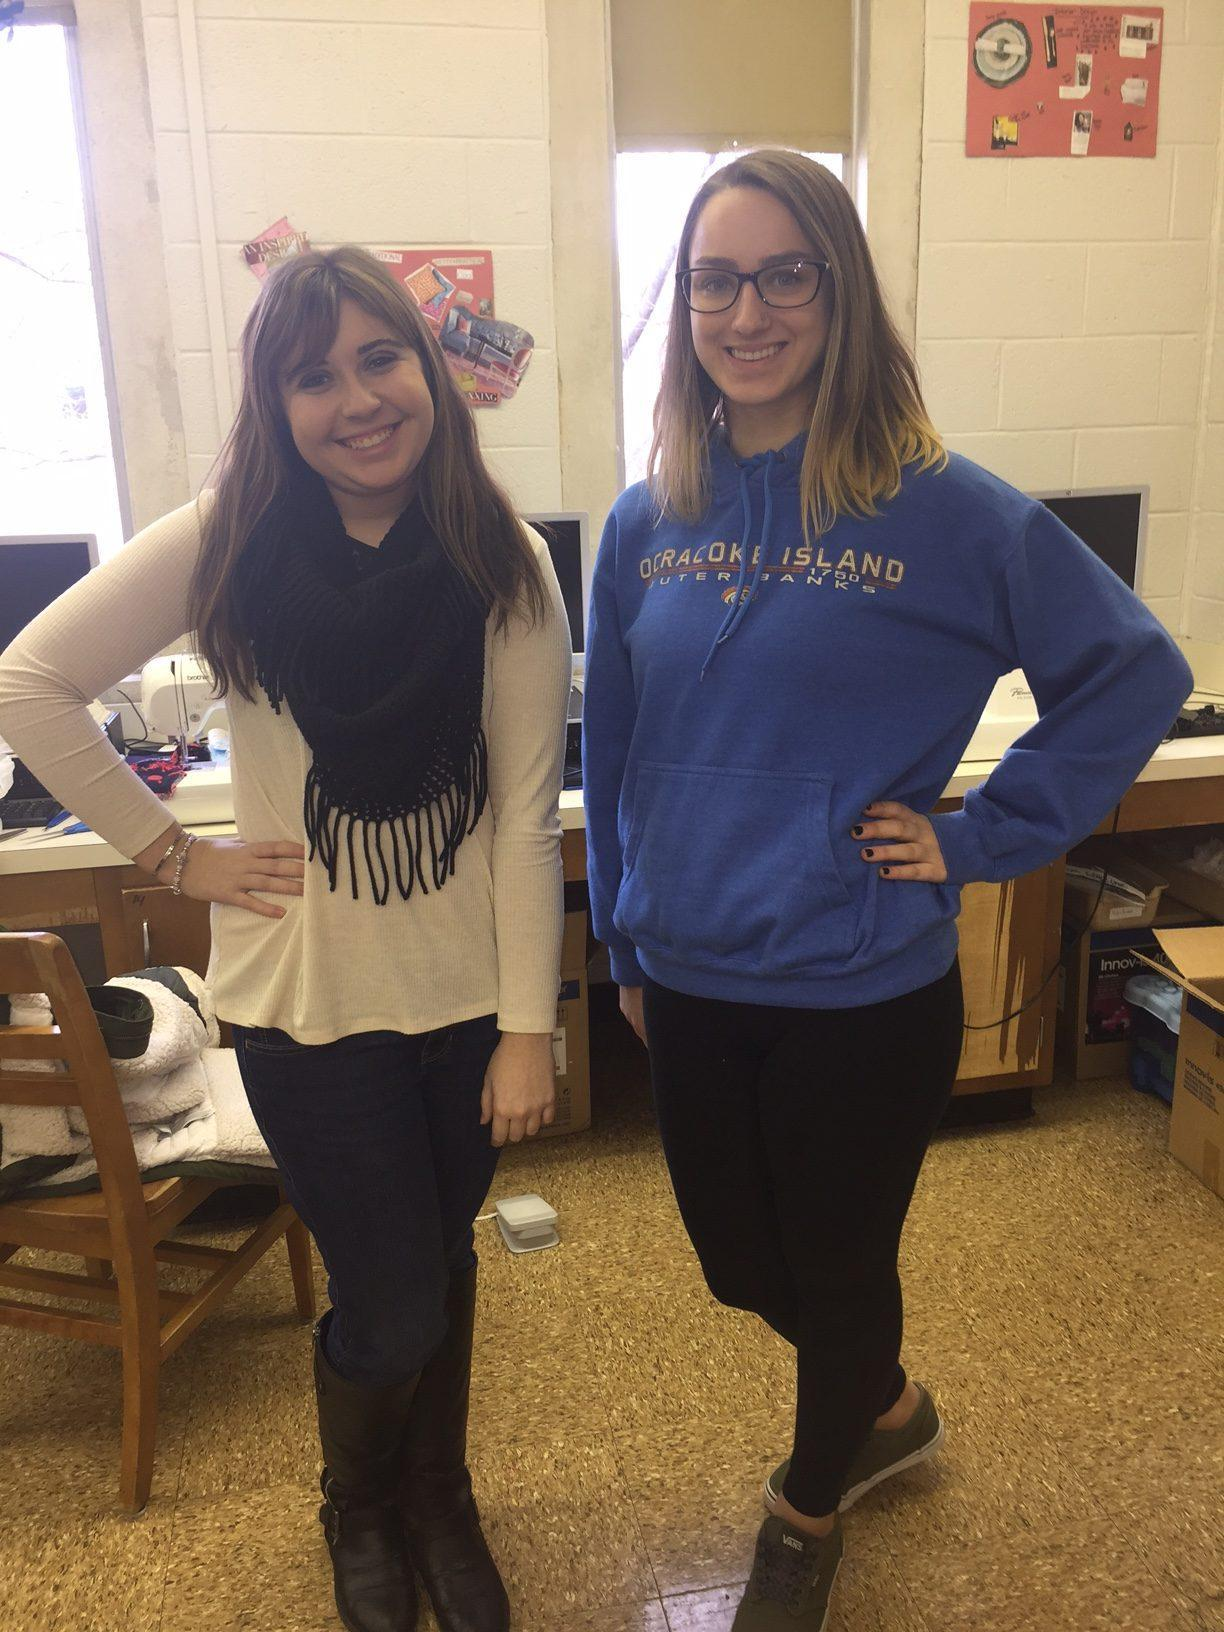 Career Study students Lily Yoder and Bri Phelps pose for the camera